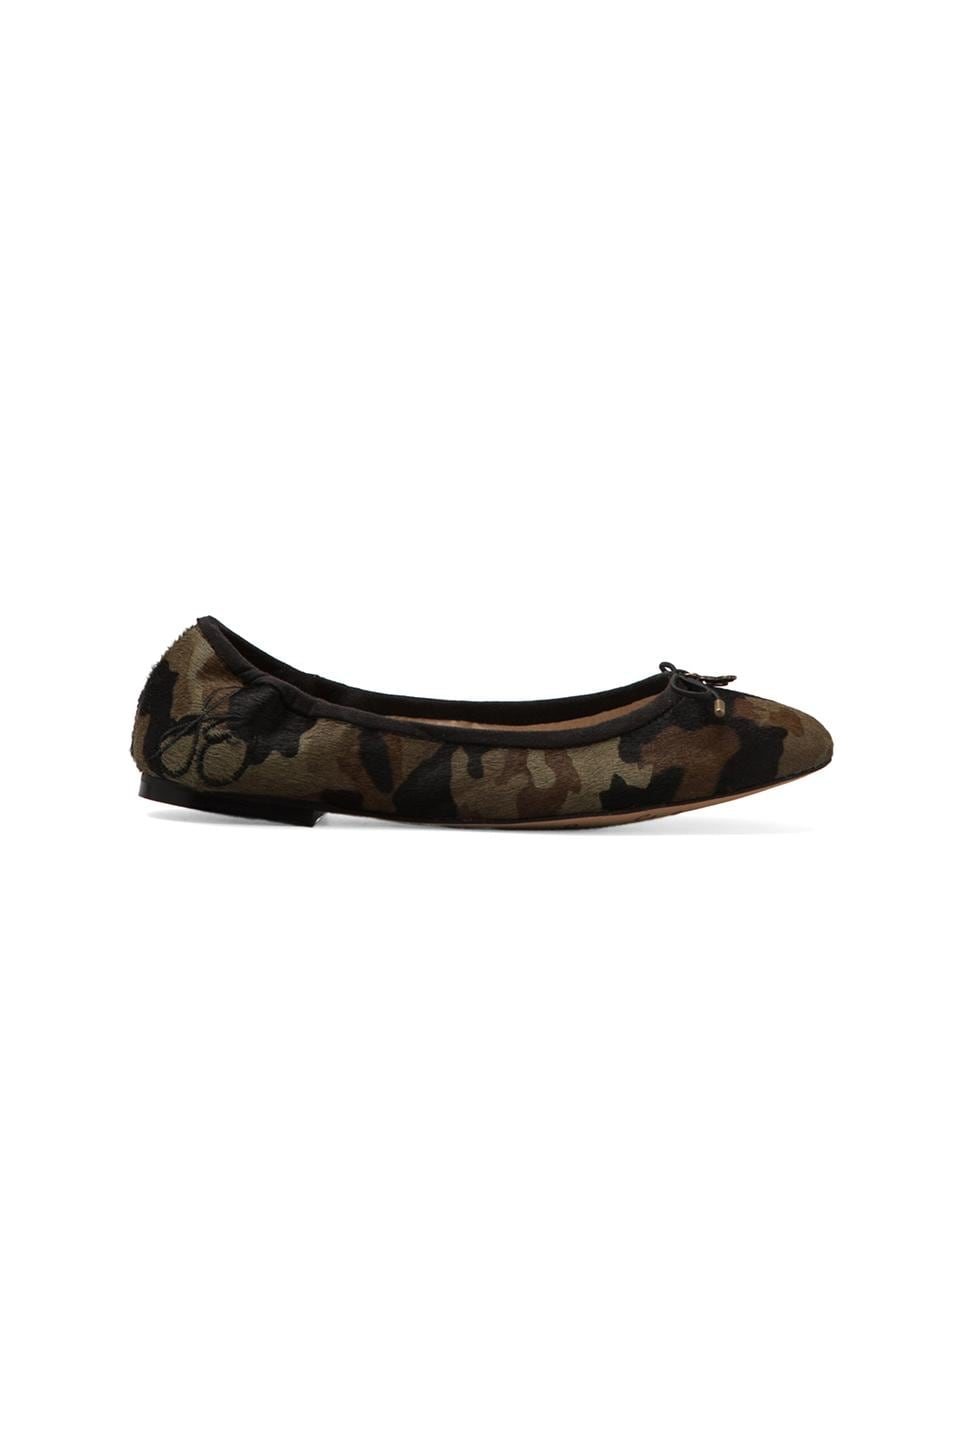 Sam Edelman Felicia Flat with Calf Hair in Olive